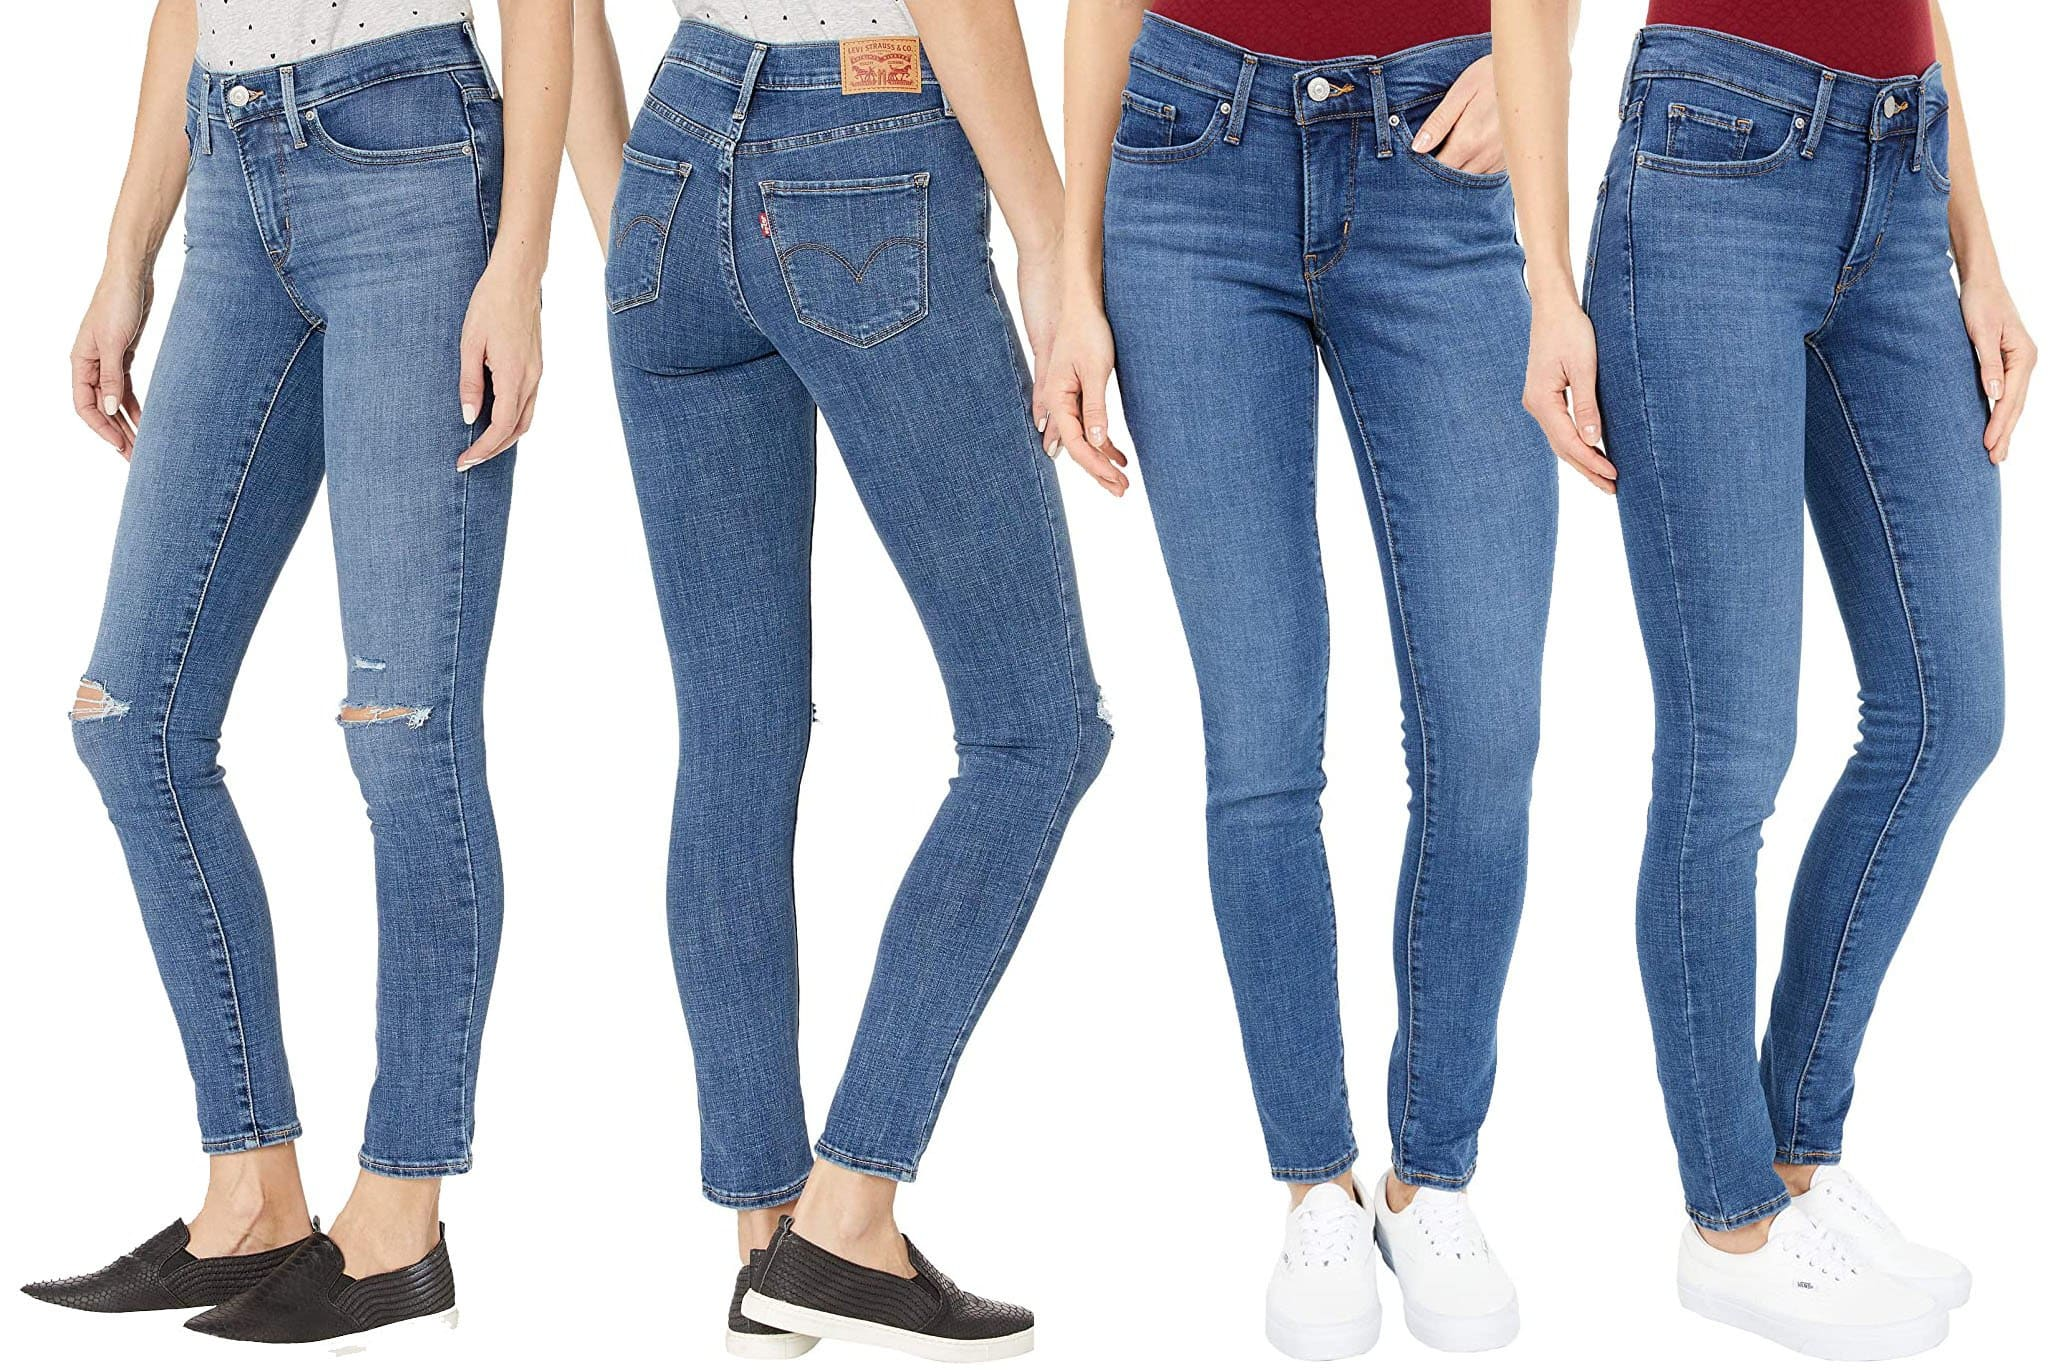 The 311 Shaping Skinny five-pocket jean creates a leg-lengthening silhouette, thanks to the mid-rise and sleek skinny fit